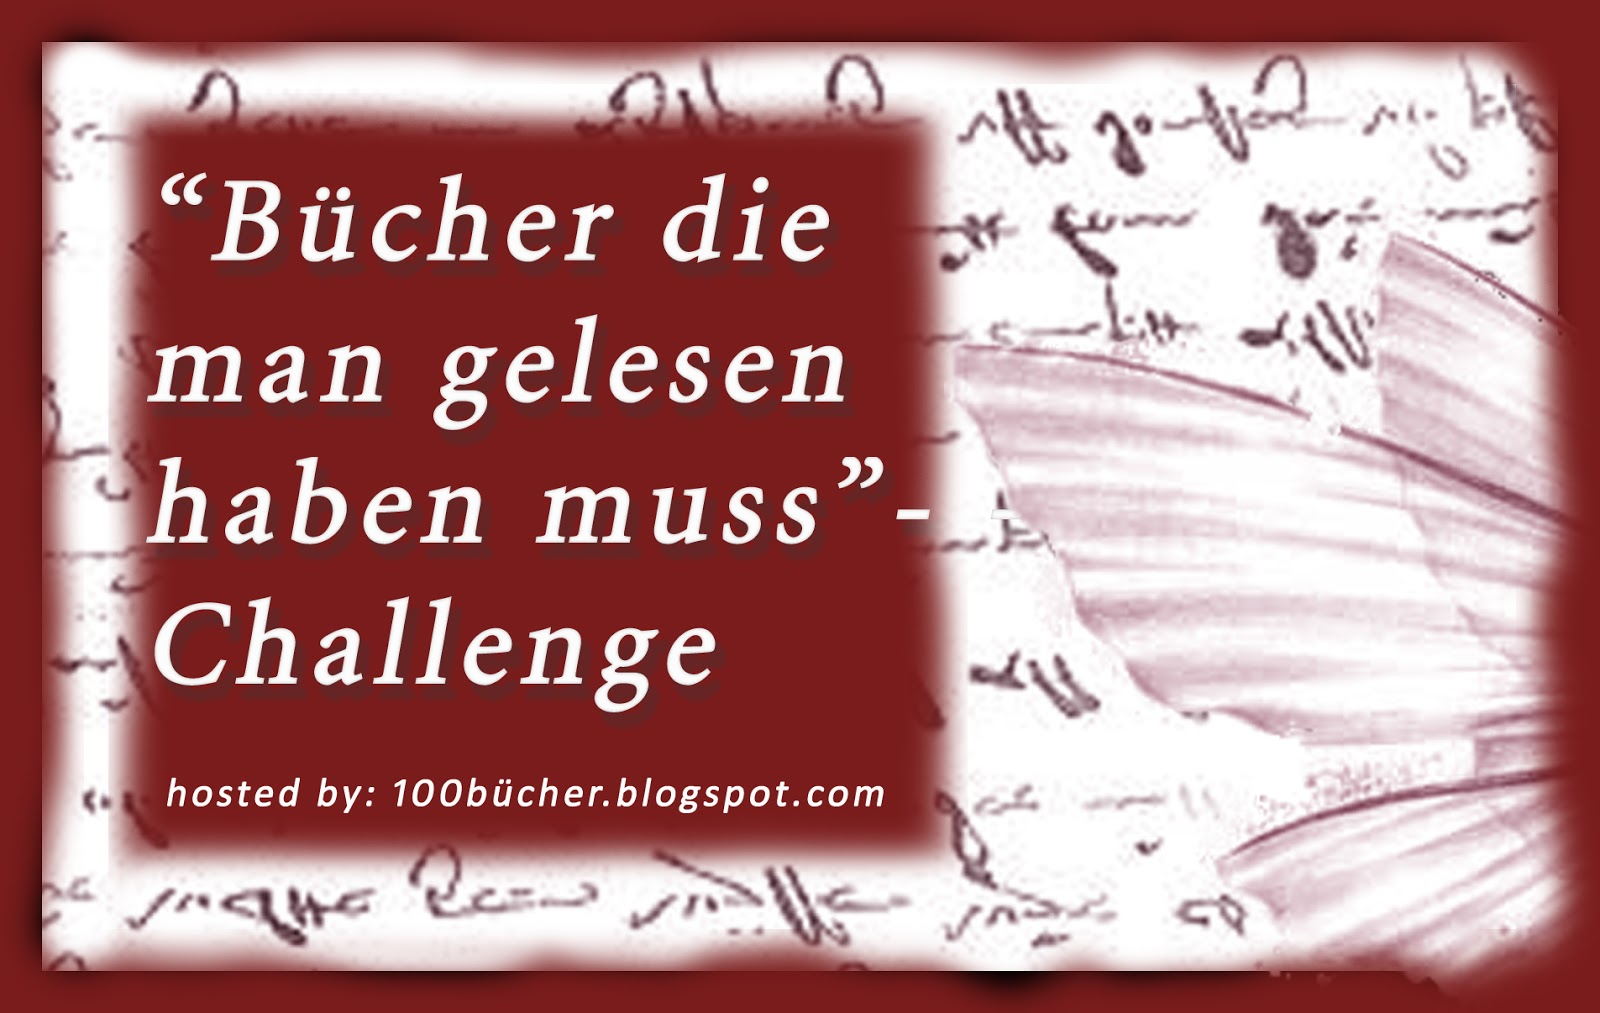 """Bcher die man gelesen haben muss""-Challenge"